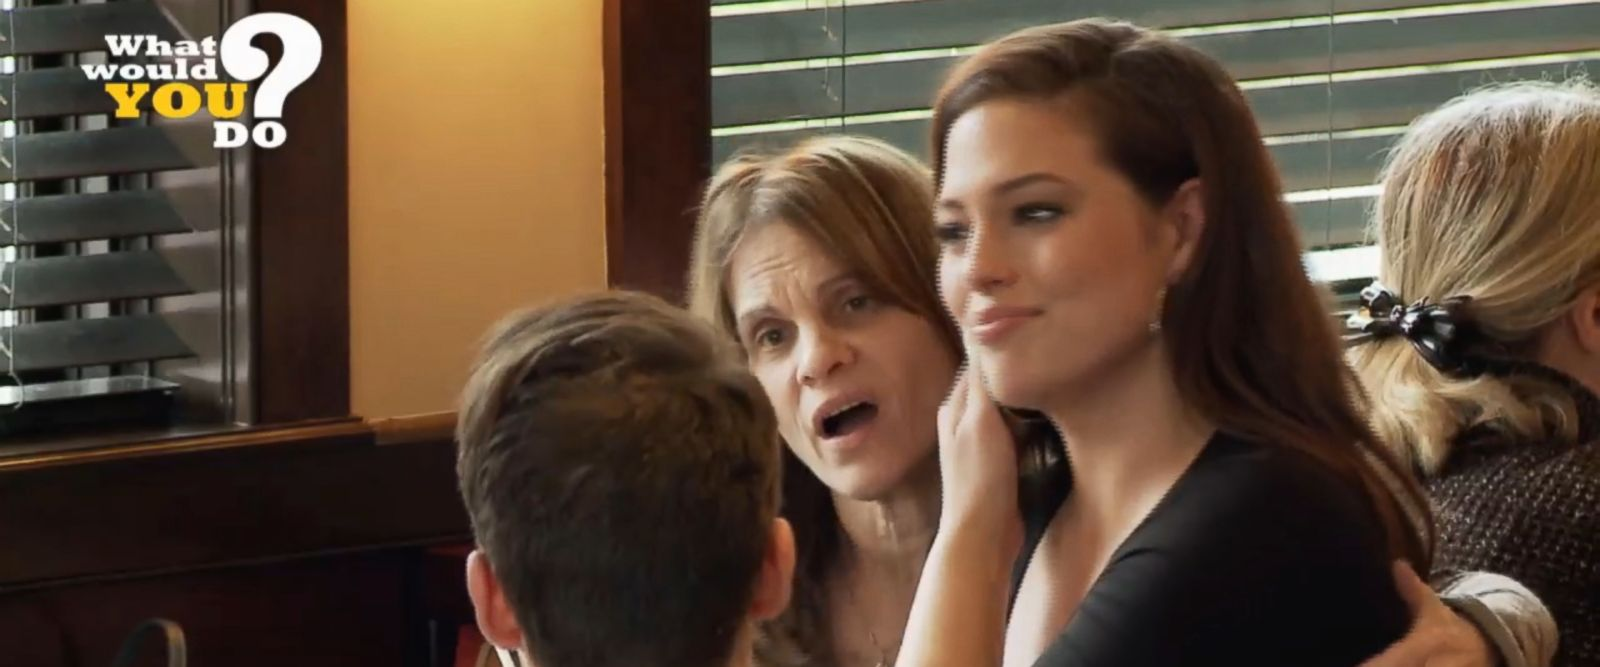 VIDEO: 'What Would You Do?': Ashley Graham plays girlfriend meeting boyfriend's parents